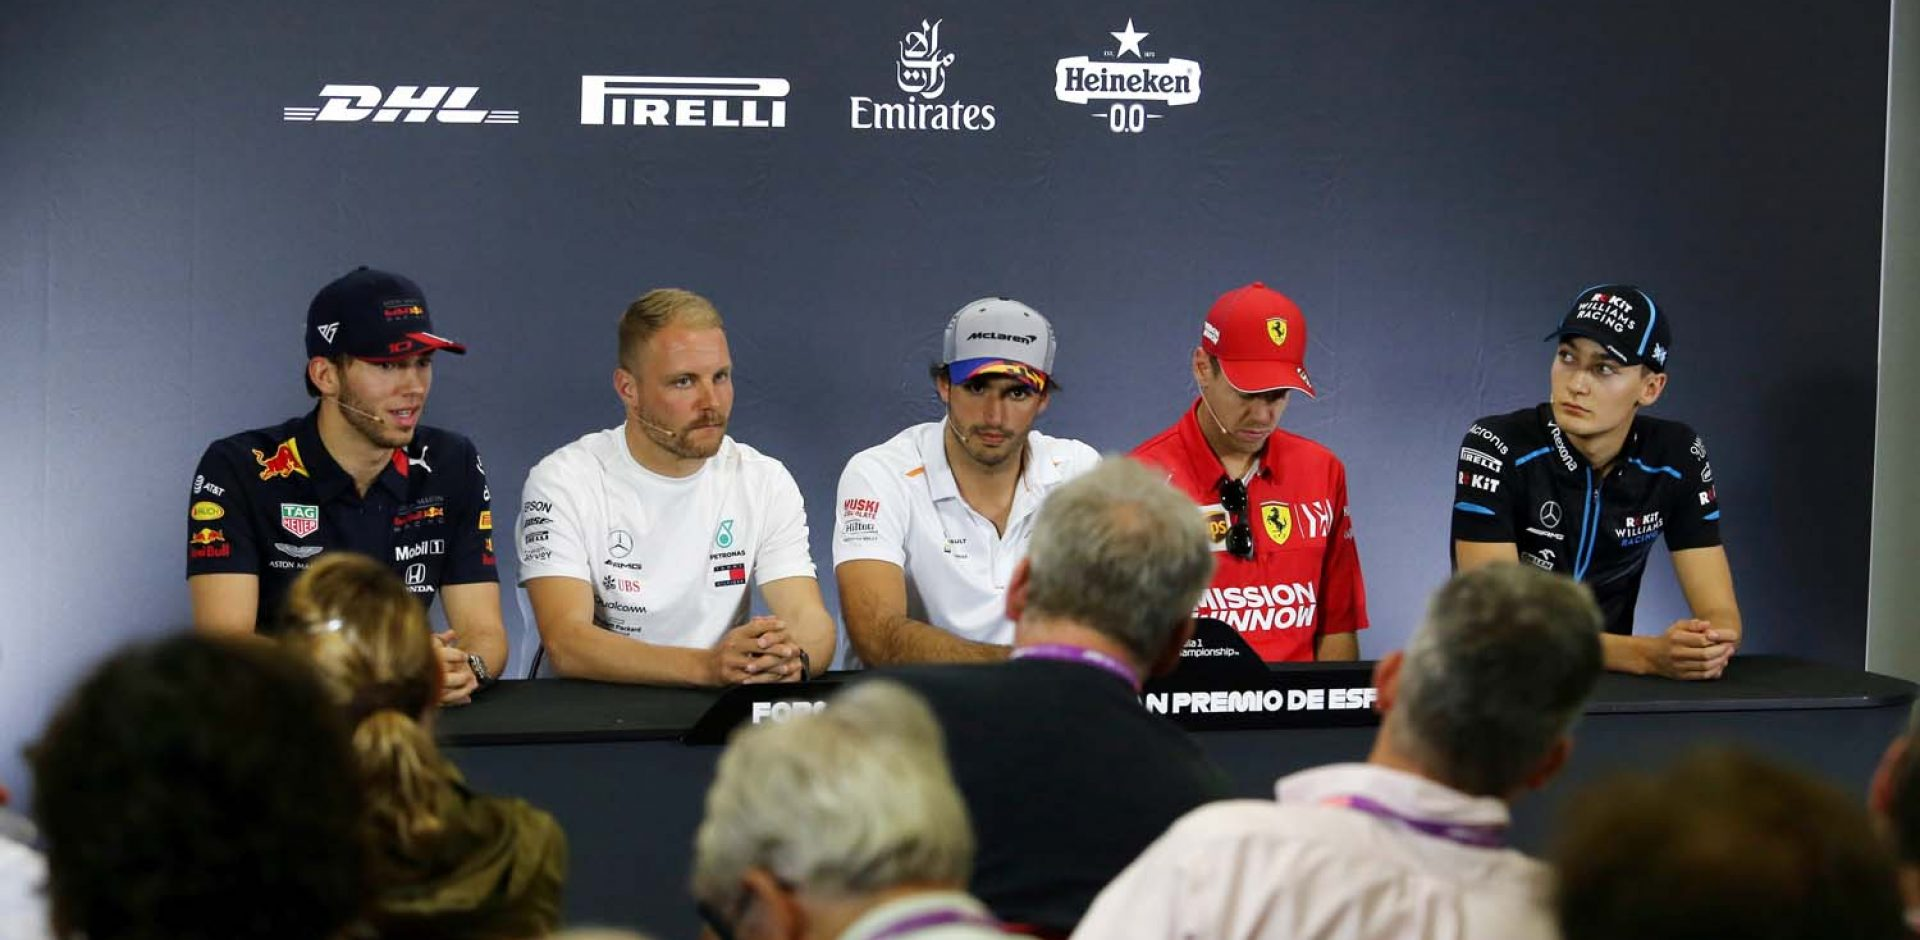 The FIA Press Conference (L to R): Pierre Gasly (FRA) Red Bull Racing; Valtteri Bottas (FIN) Mercedes AMG F1; Carlos Sainz Jr (ESP) McLaren; Sebastian Vettel (GER) Ferrari; George Russell (GBR) Williams Racing. Spanish Grand Prix, Thursday 9th May 2019. Barcelona, Spain.